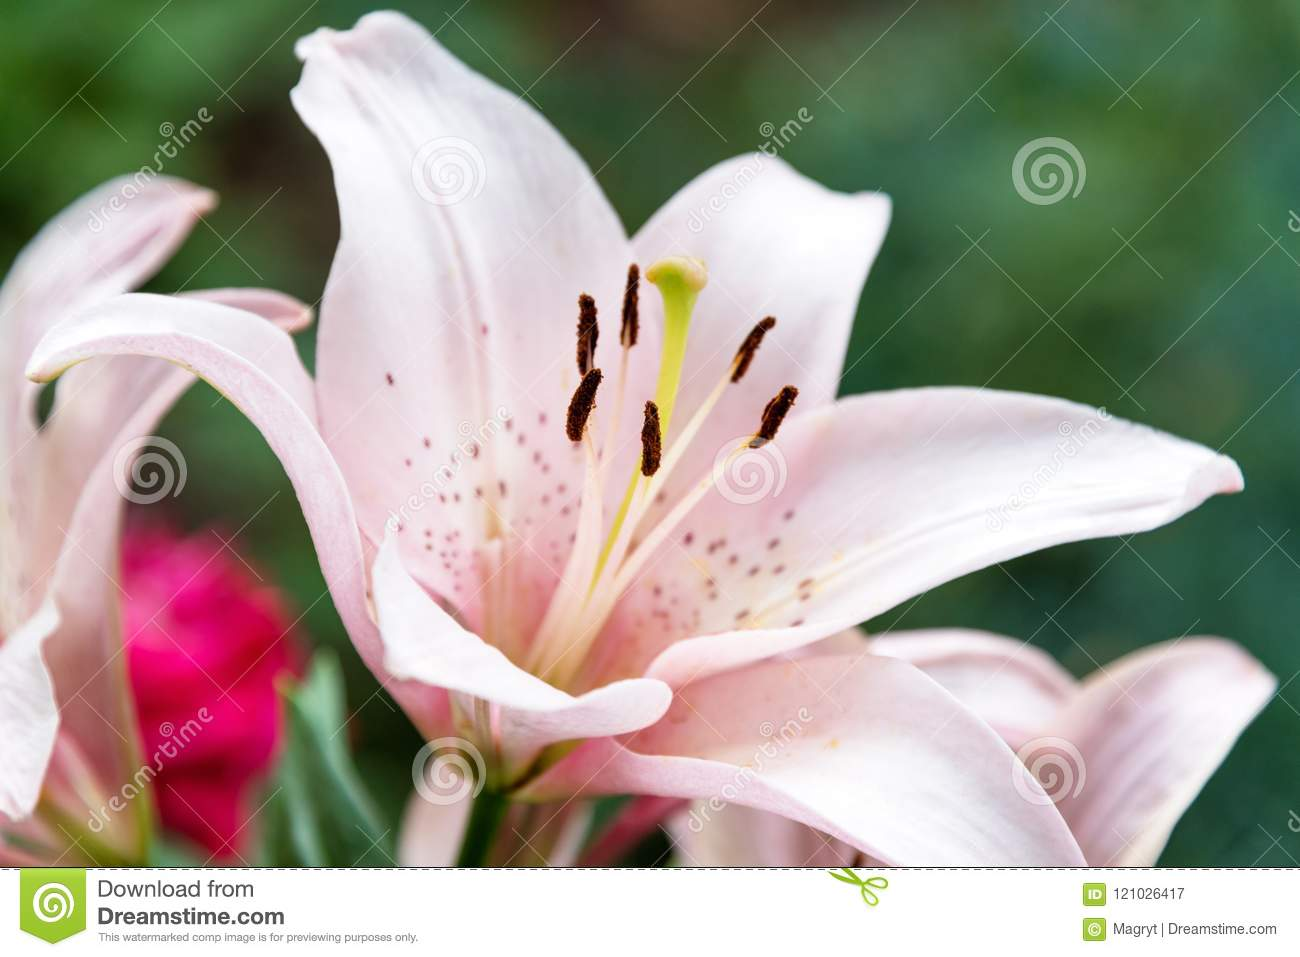 Beautiful lily flower on green leaves background lilium longiflorum beautiful lily flower on green leaves background lilium longiflorum flowers in the garden izmirmasajfo